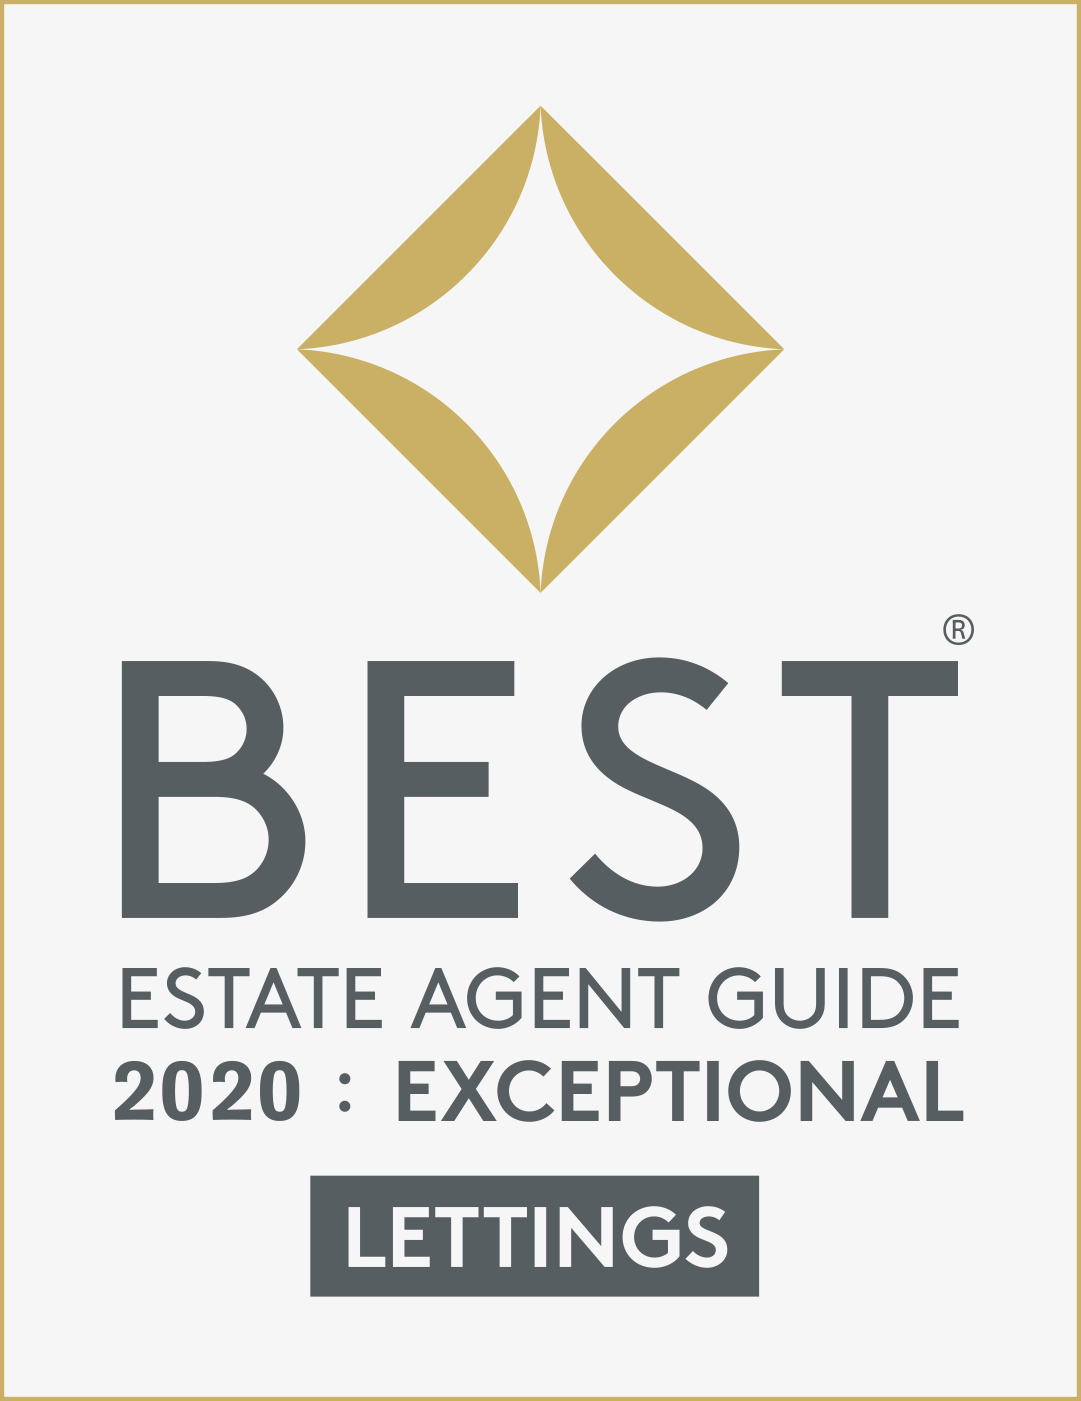 Best estate agent guide 2019, Sales